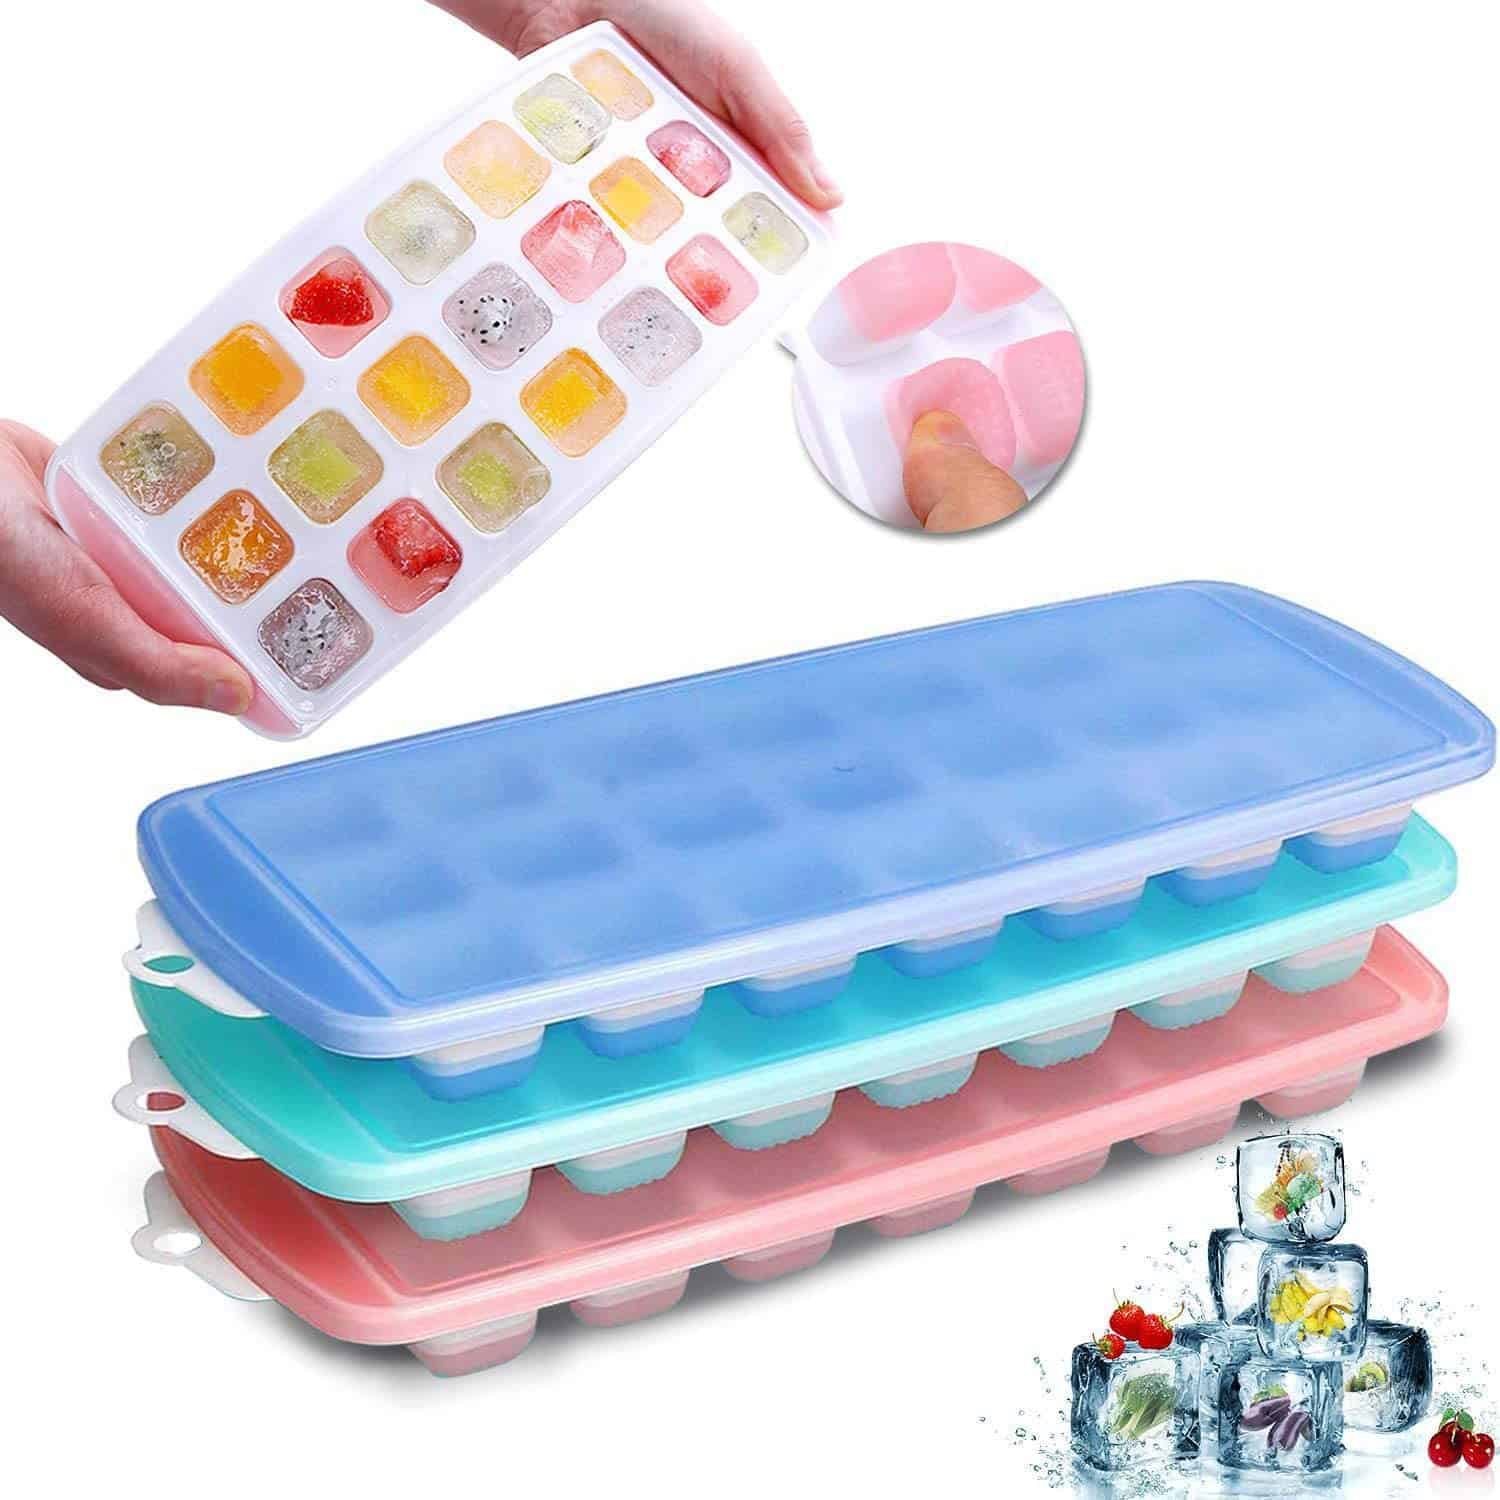 Ice Cube Trays Silicone Easy Release and Flexible 21 Ice Trays